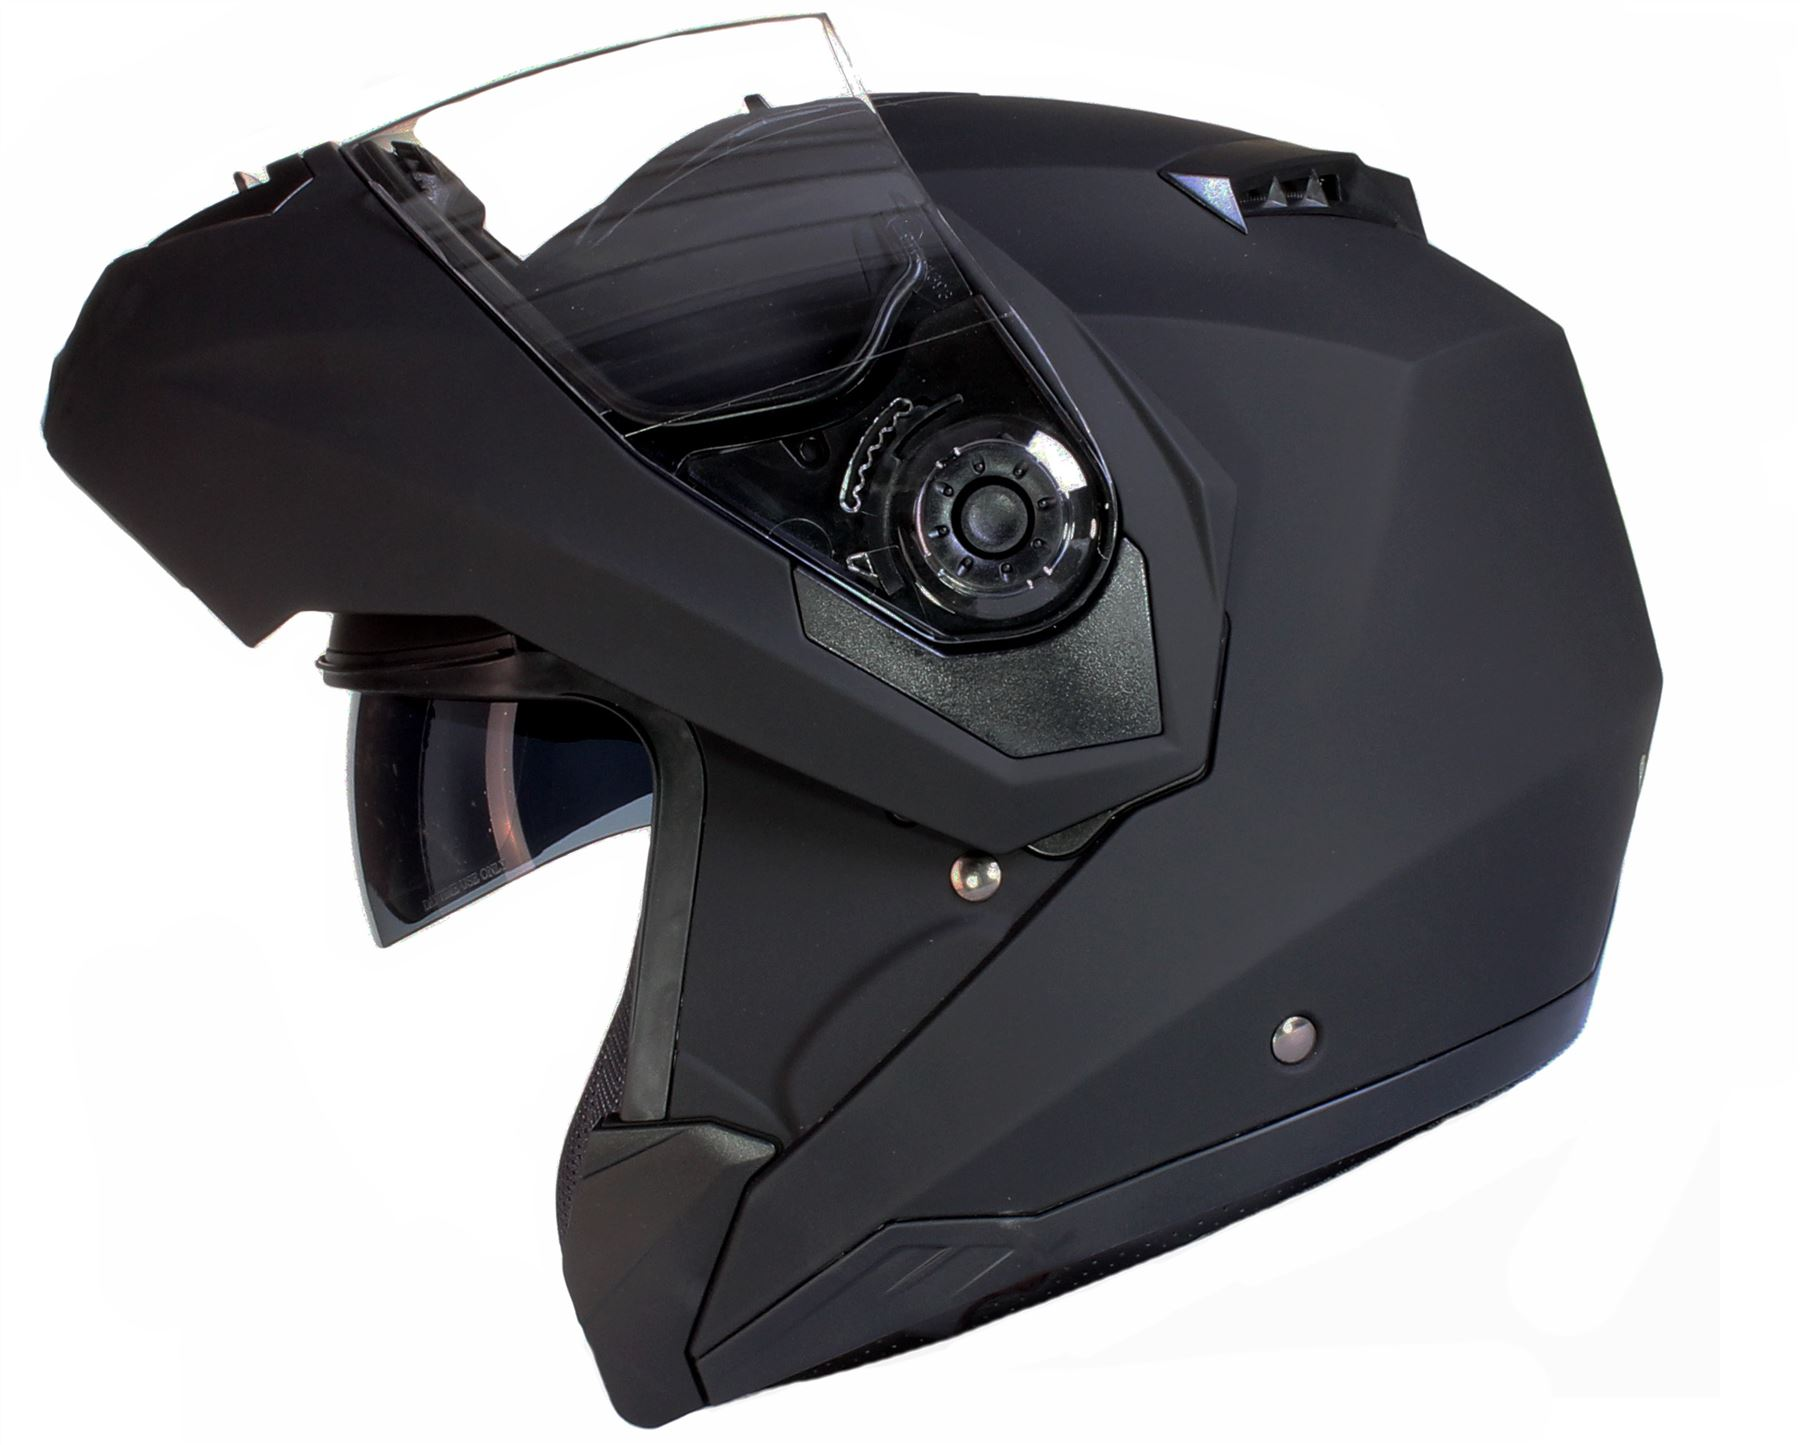 casque moto modulable avec double visi re teint e scooter. Black Bedroom Furniture Sets. Home Design Ideas